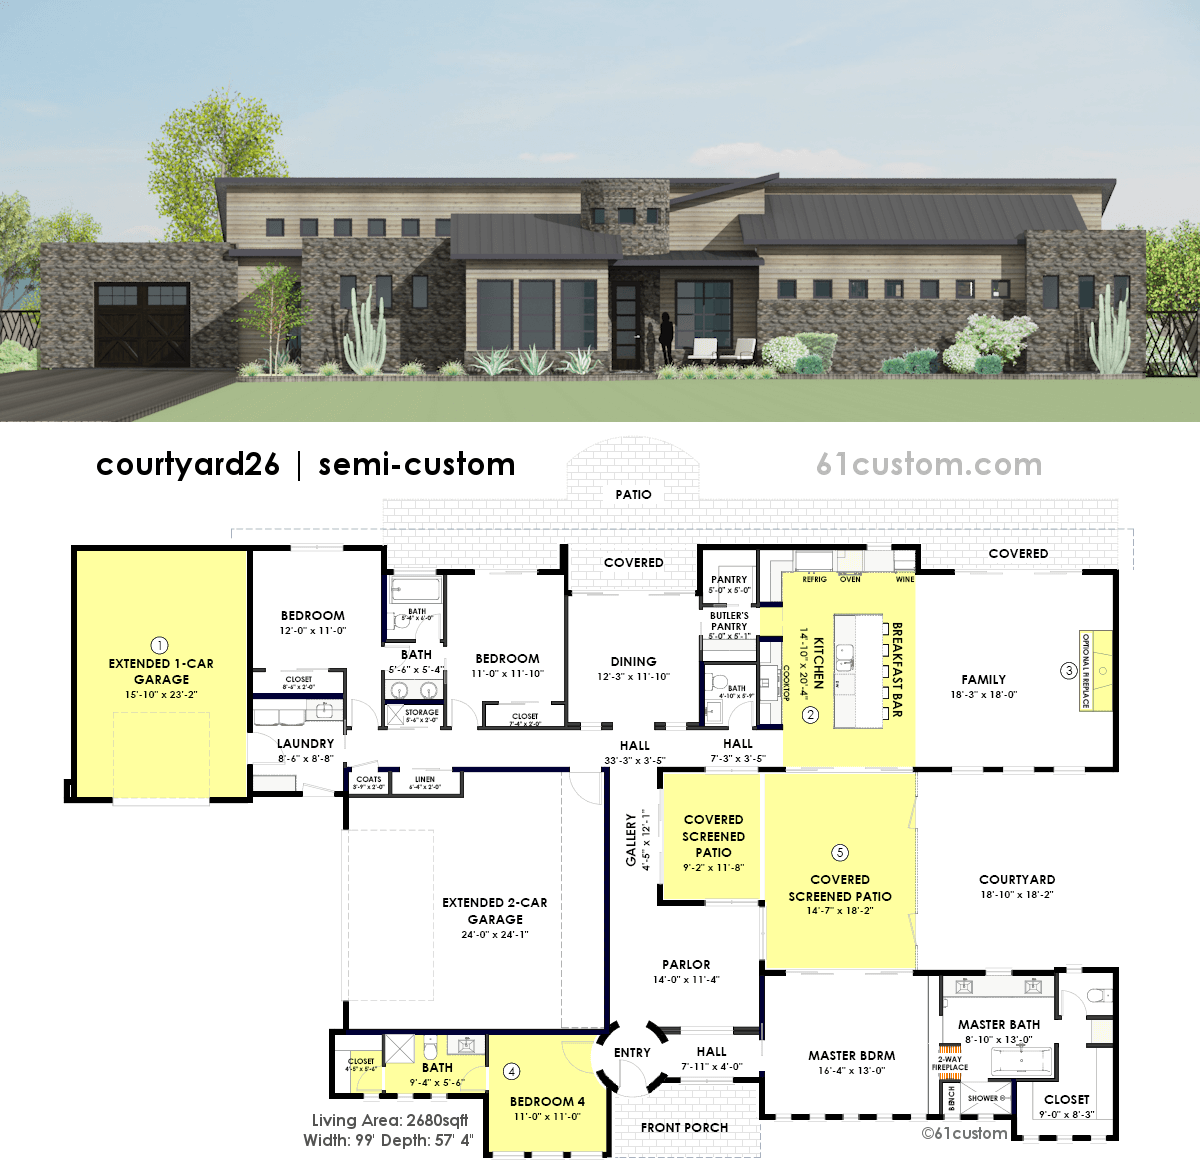 courtyard house plan contemporary side courtyard house plan 61custom contemporary modern house plans 8215